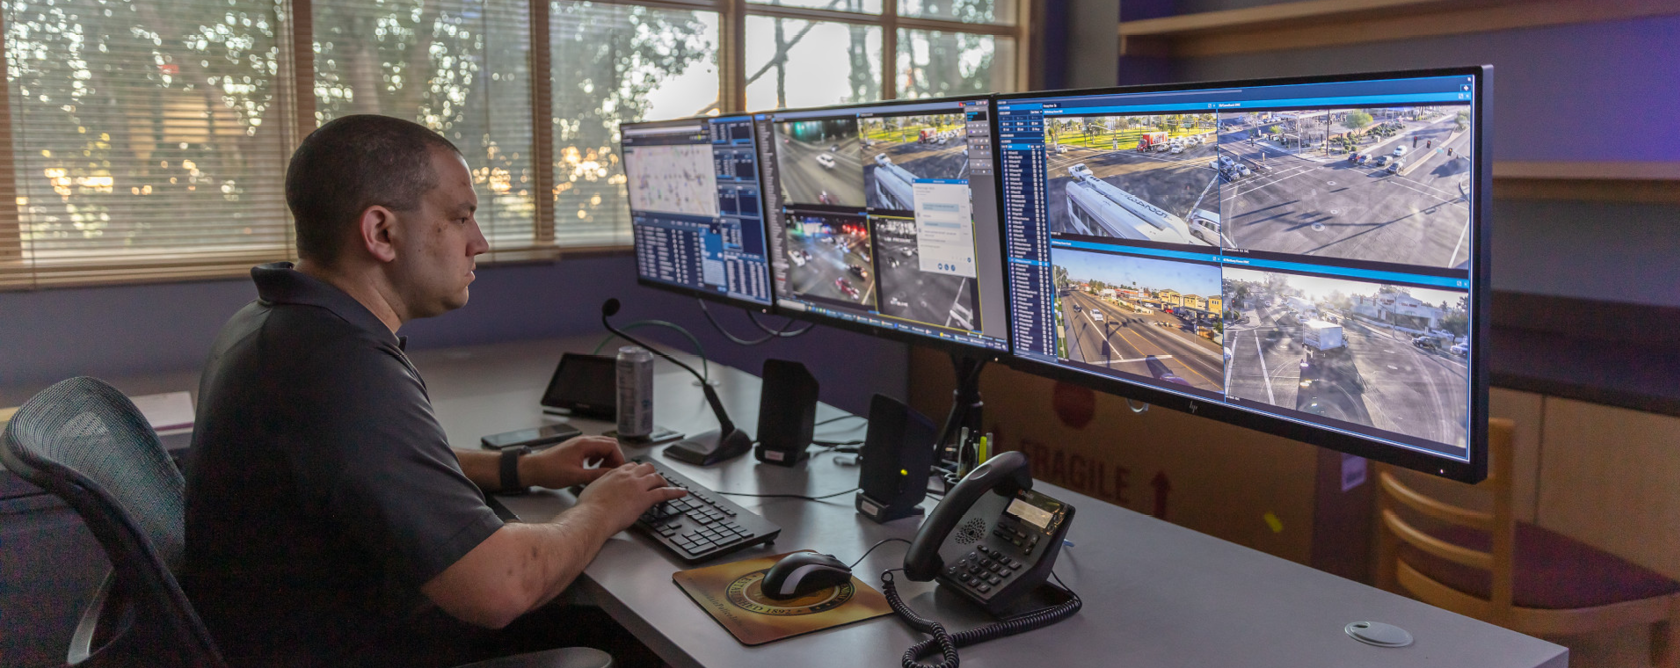 Glendale PD Real-Time Crime Center